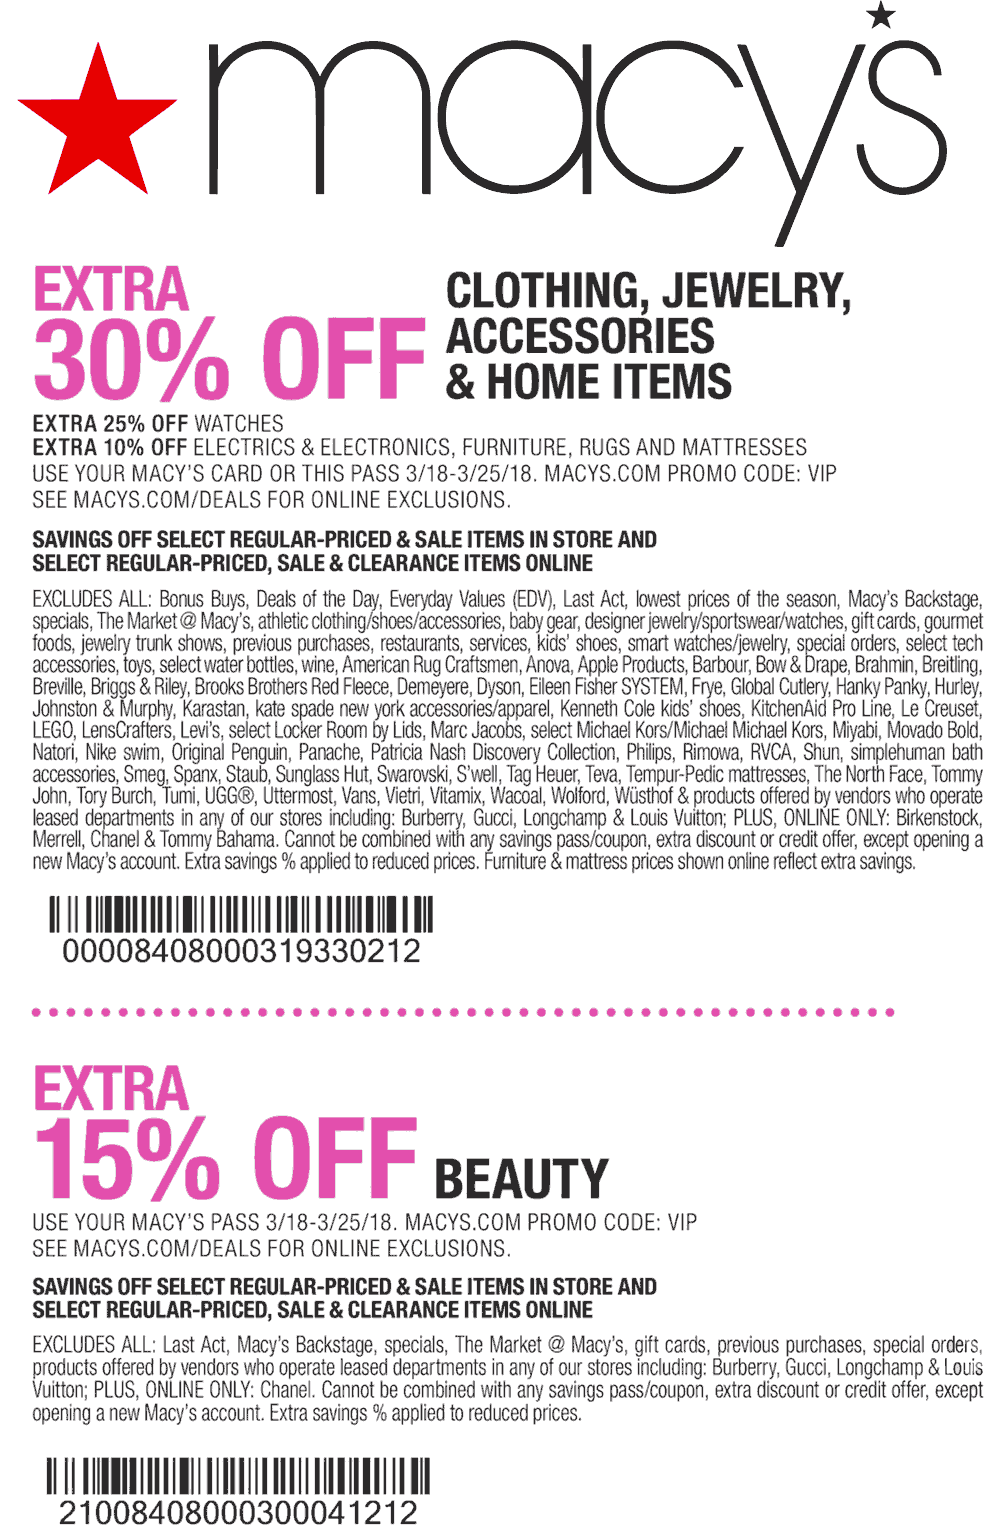 Macys Coupon August 2018 30% off at Macys, or online via promo code VIP